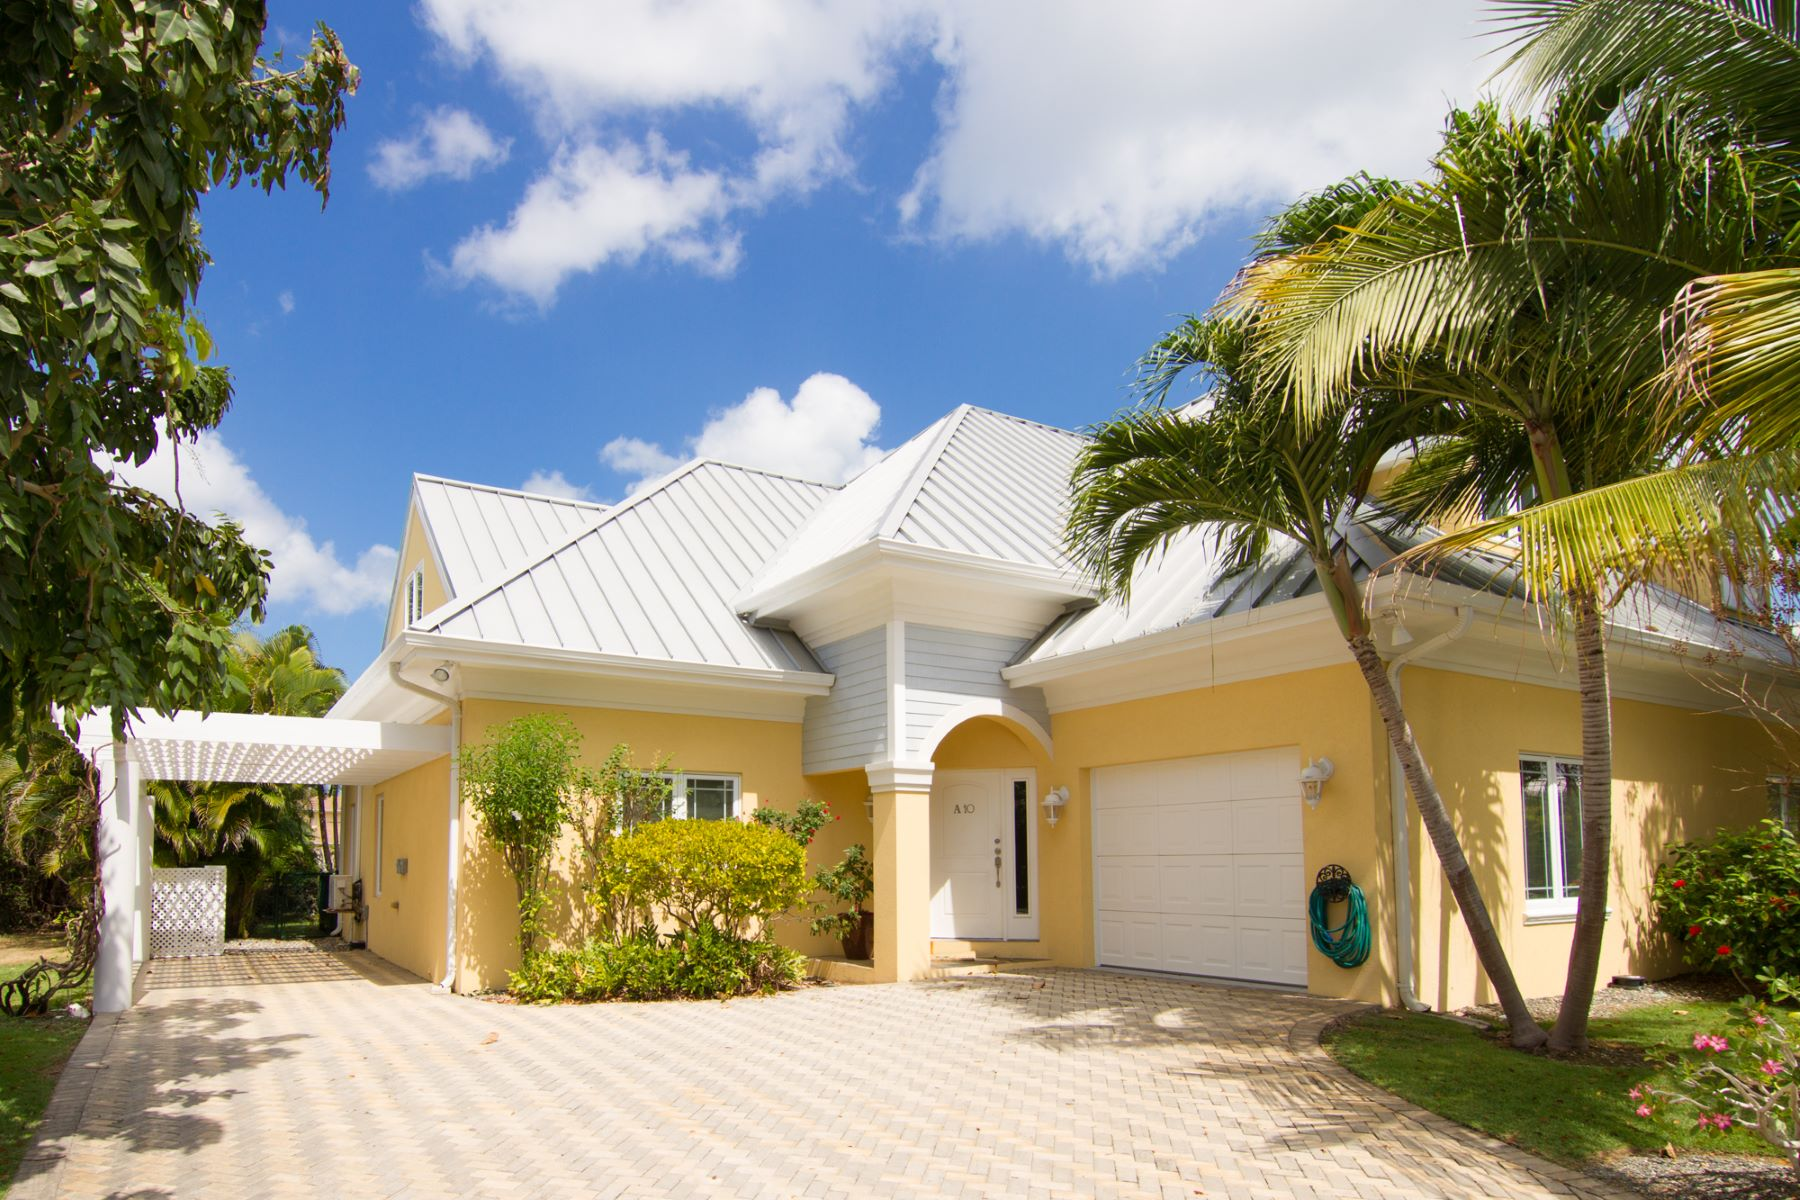 Vivienda unifamiliar por un Venta en Savannah Grand Family Home Other Cayman Islands, Otras Áreas En Las Islas Caimán Islas Caimán